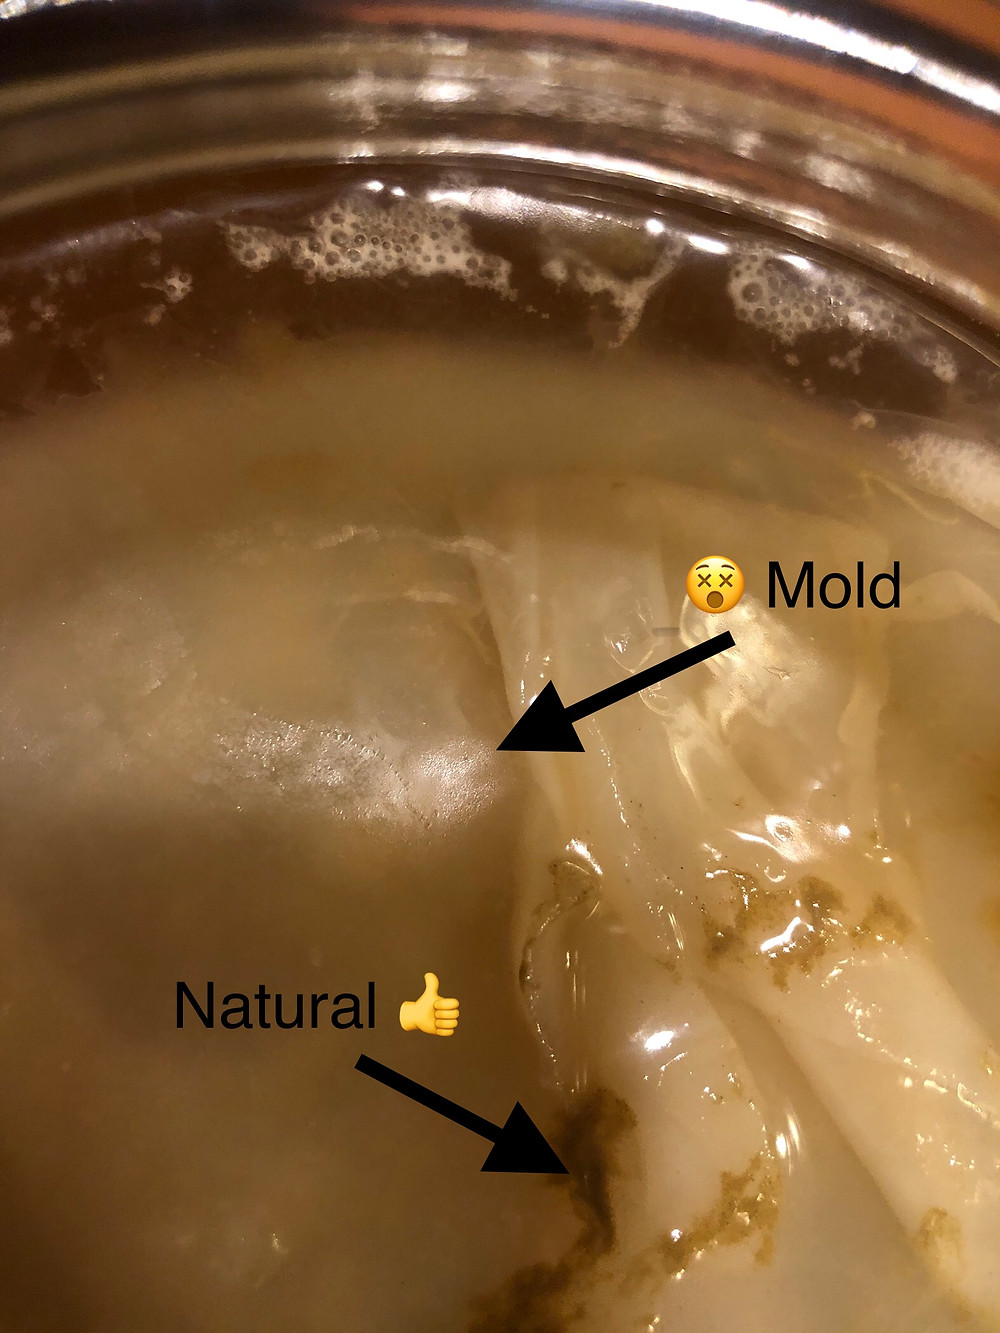 Mold is fuzzy and bad, yeast is slimy and good.